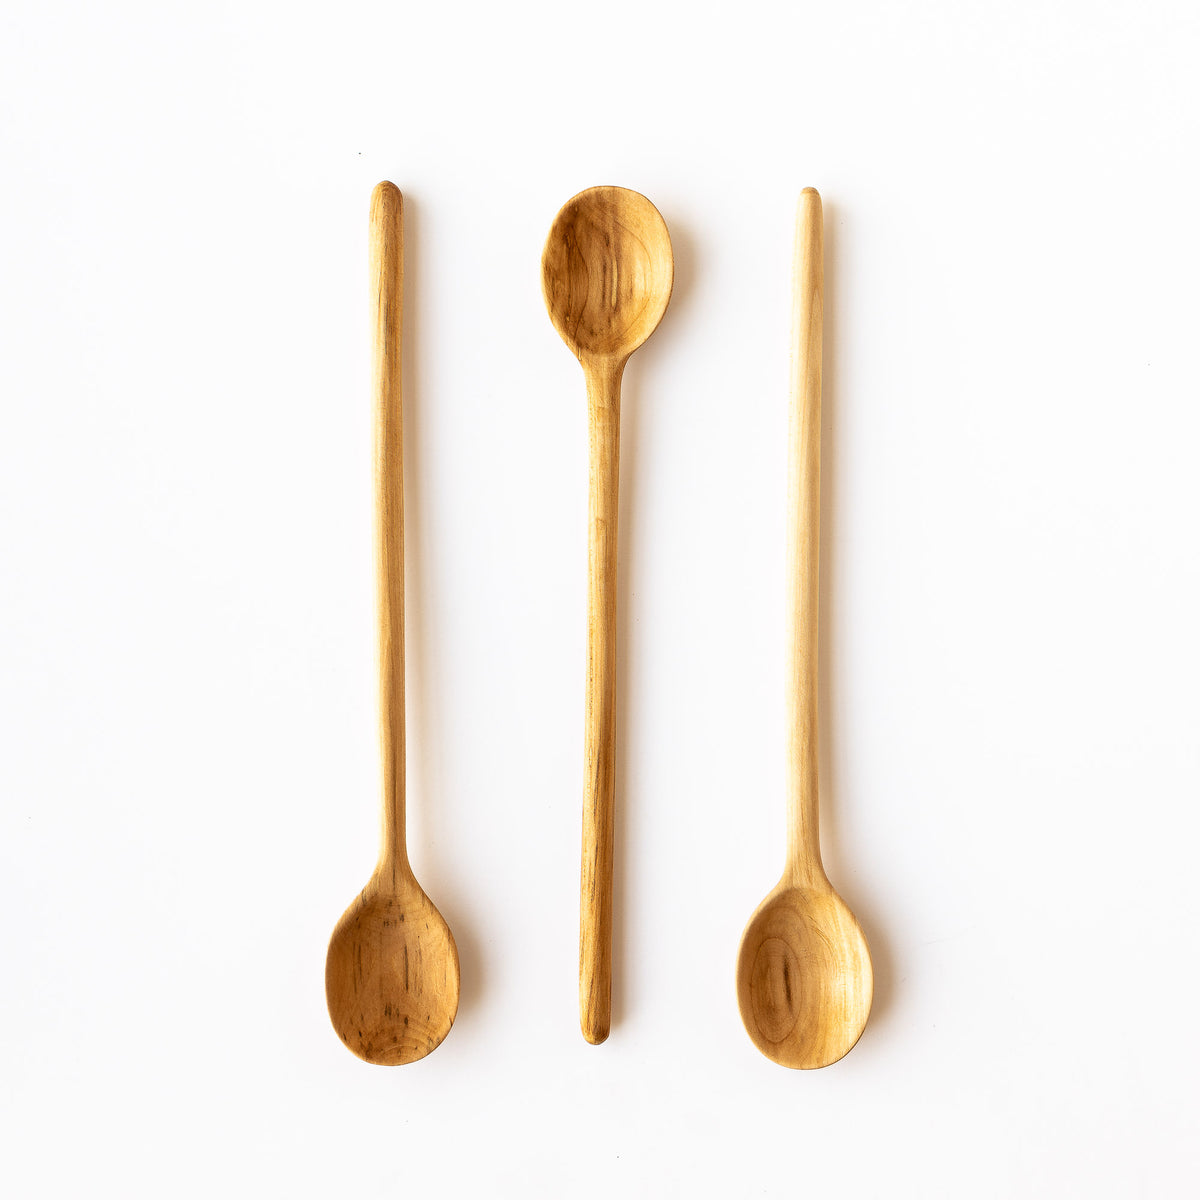 Three Hand-carved Basswood Cooking Spoons - Sold by Chic & Basta